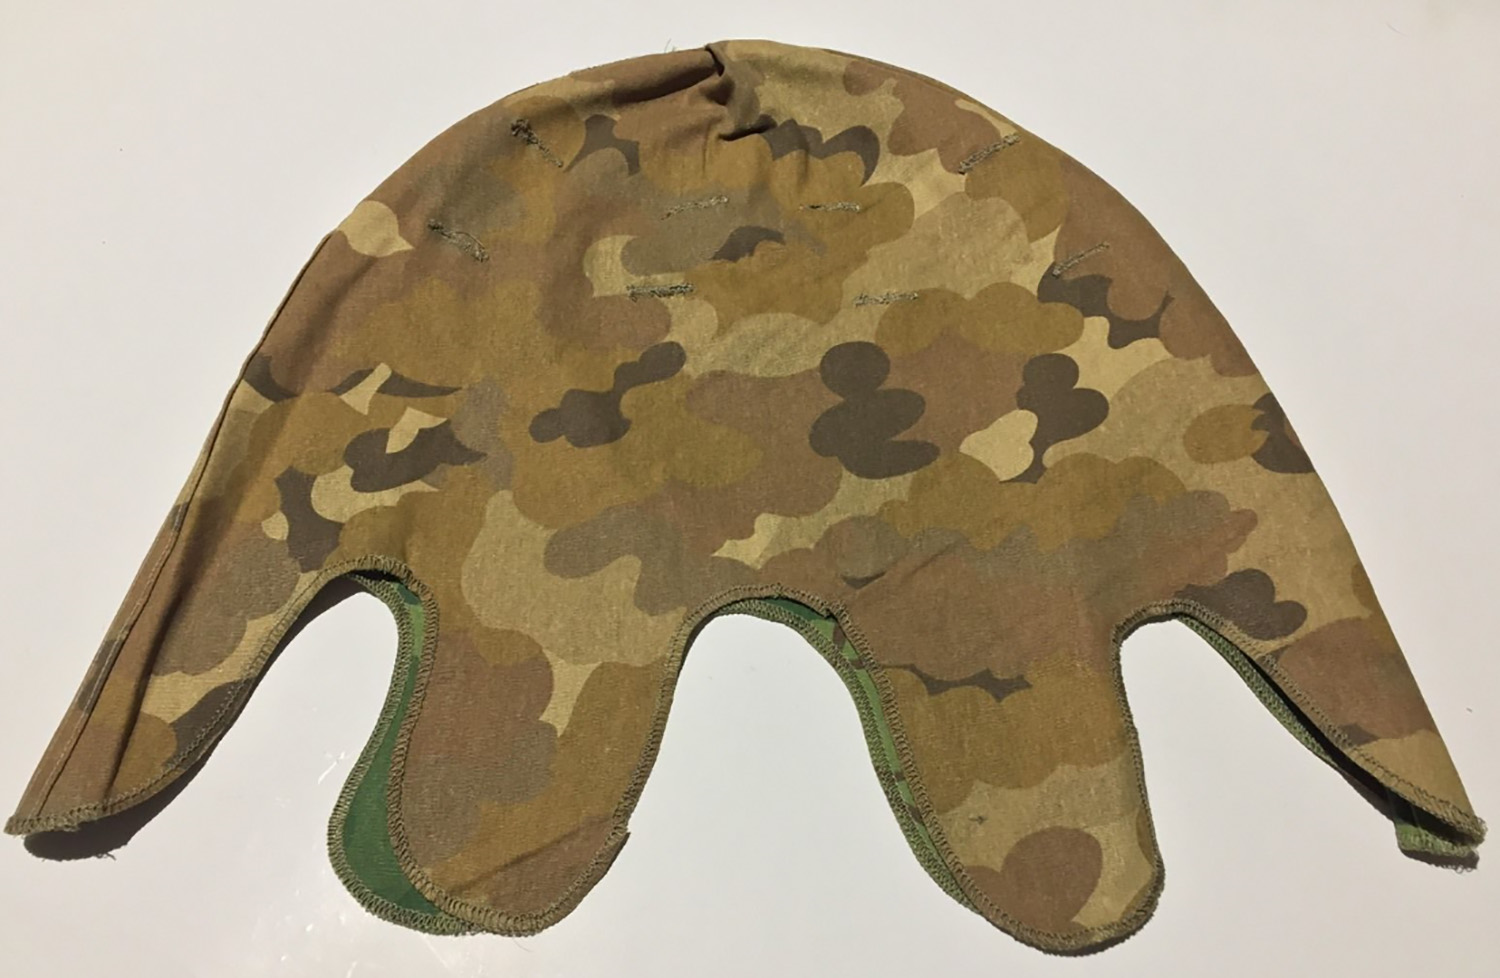 Mitchell camouflage originally came in spring and fall colors, but the fall color scheme went by the wayside